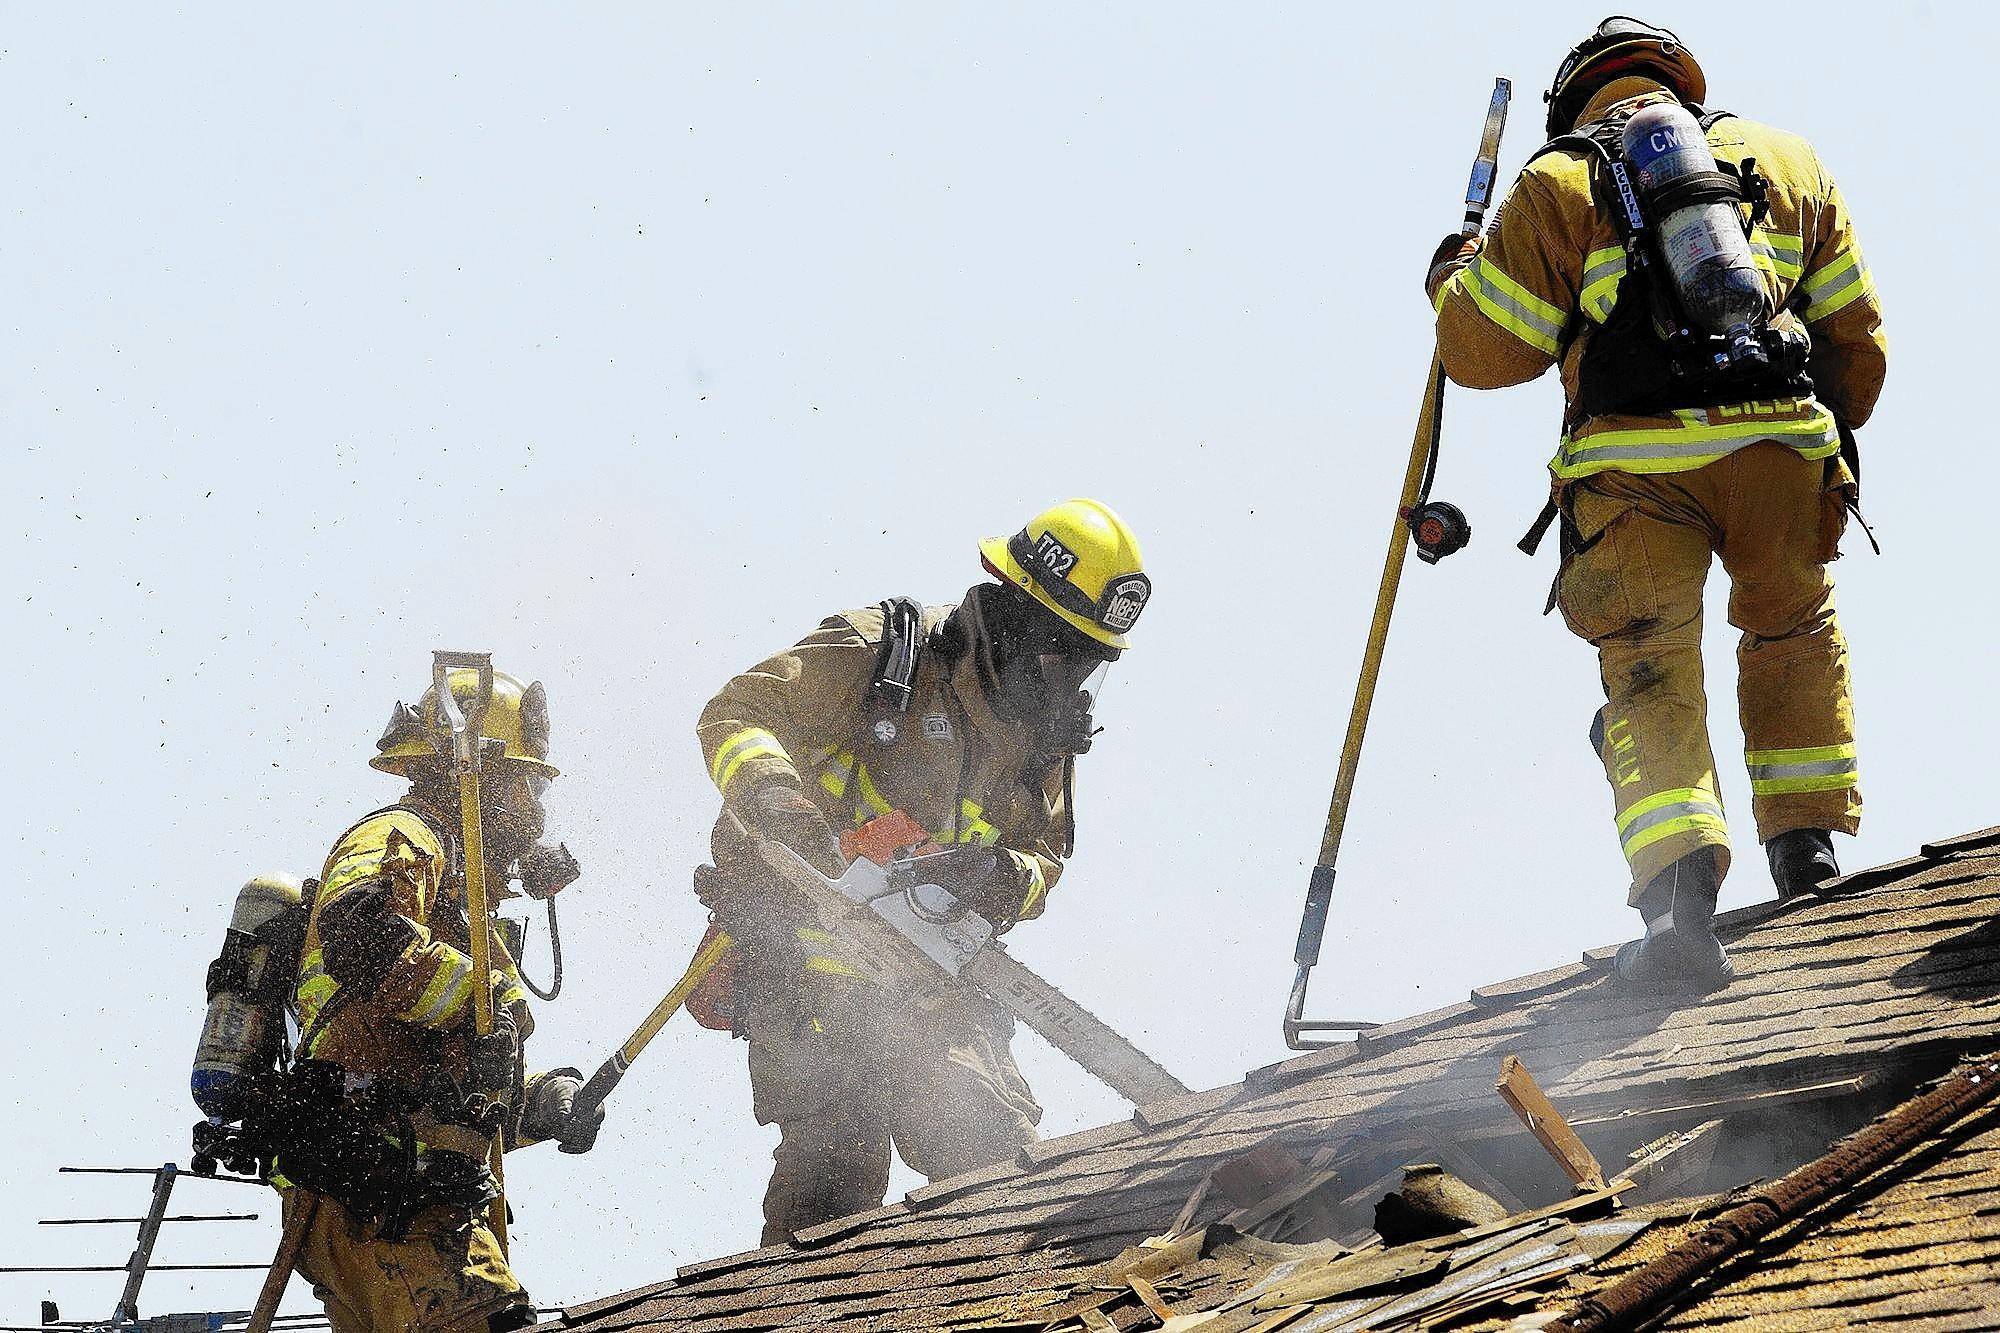 Newport Beach and Costa Mesa Fire Department personnel vent the roof of a house that caught fire in the 200 block of Sherwood Street in Costa Mesa on Wednesday.